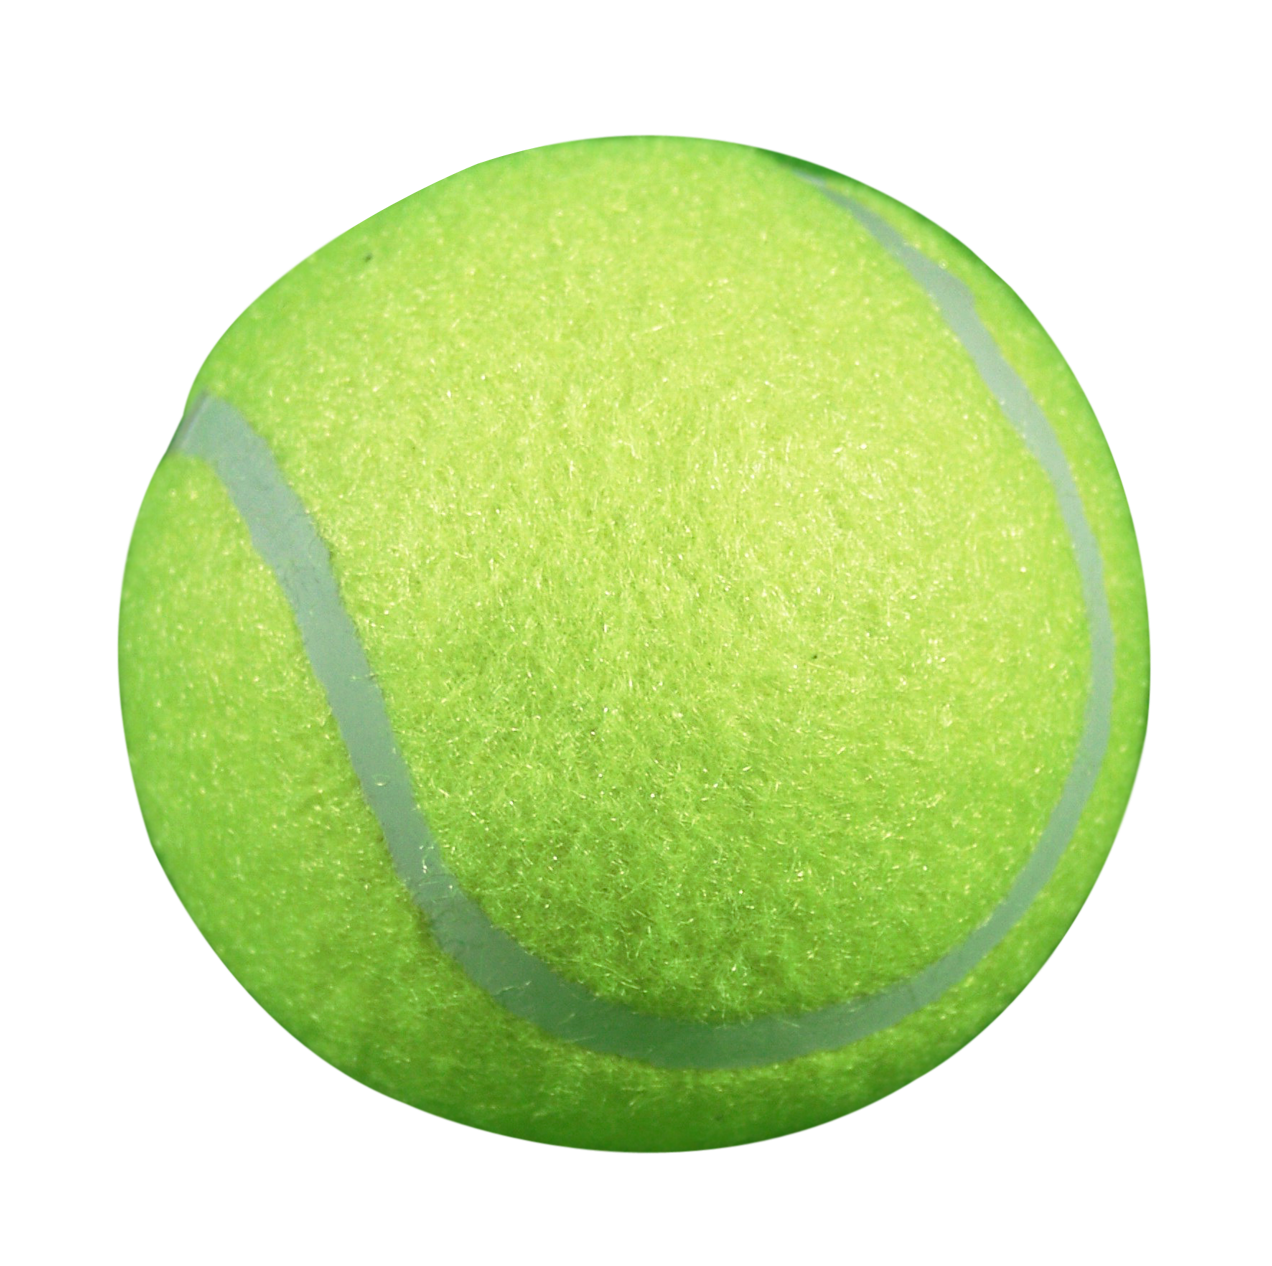 Green Tennis Ball PNG image #43446